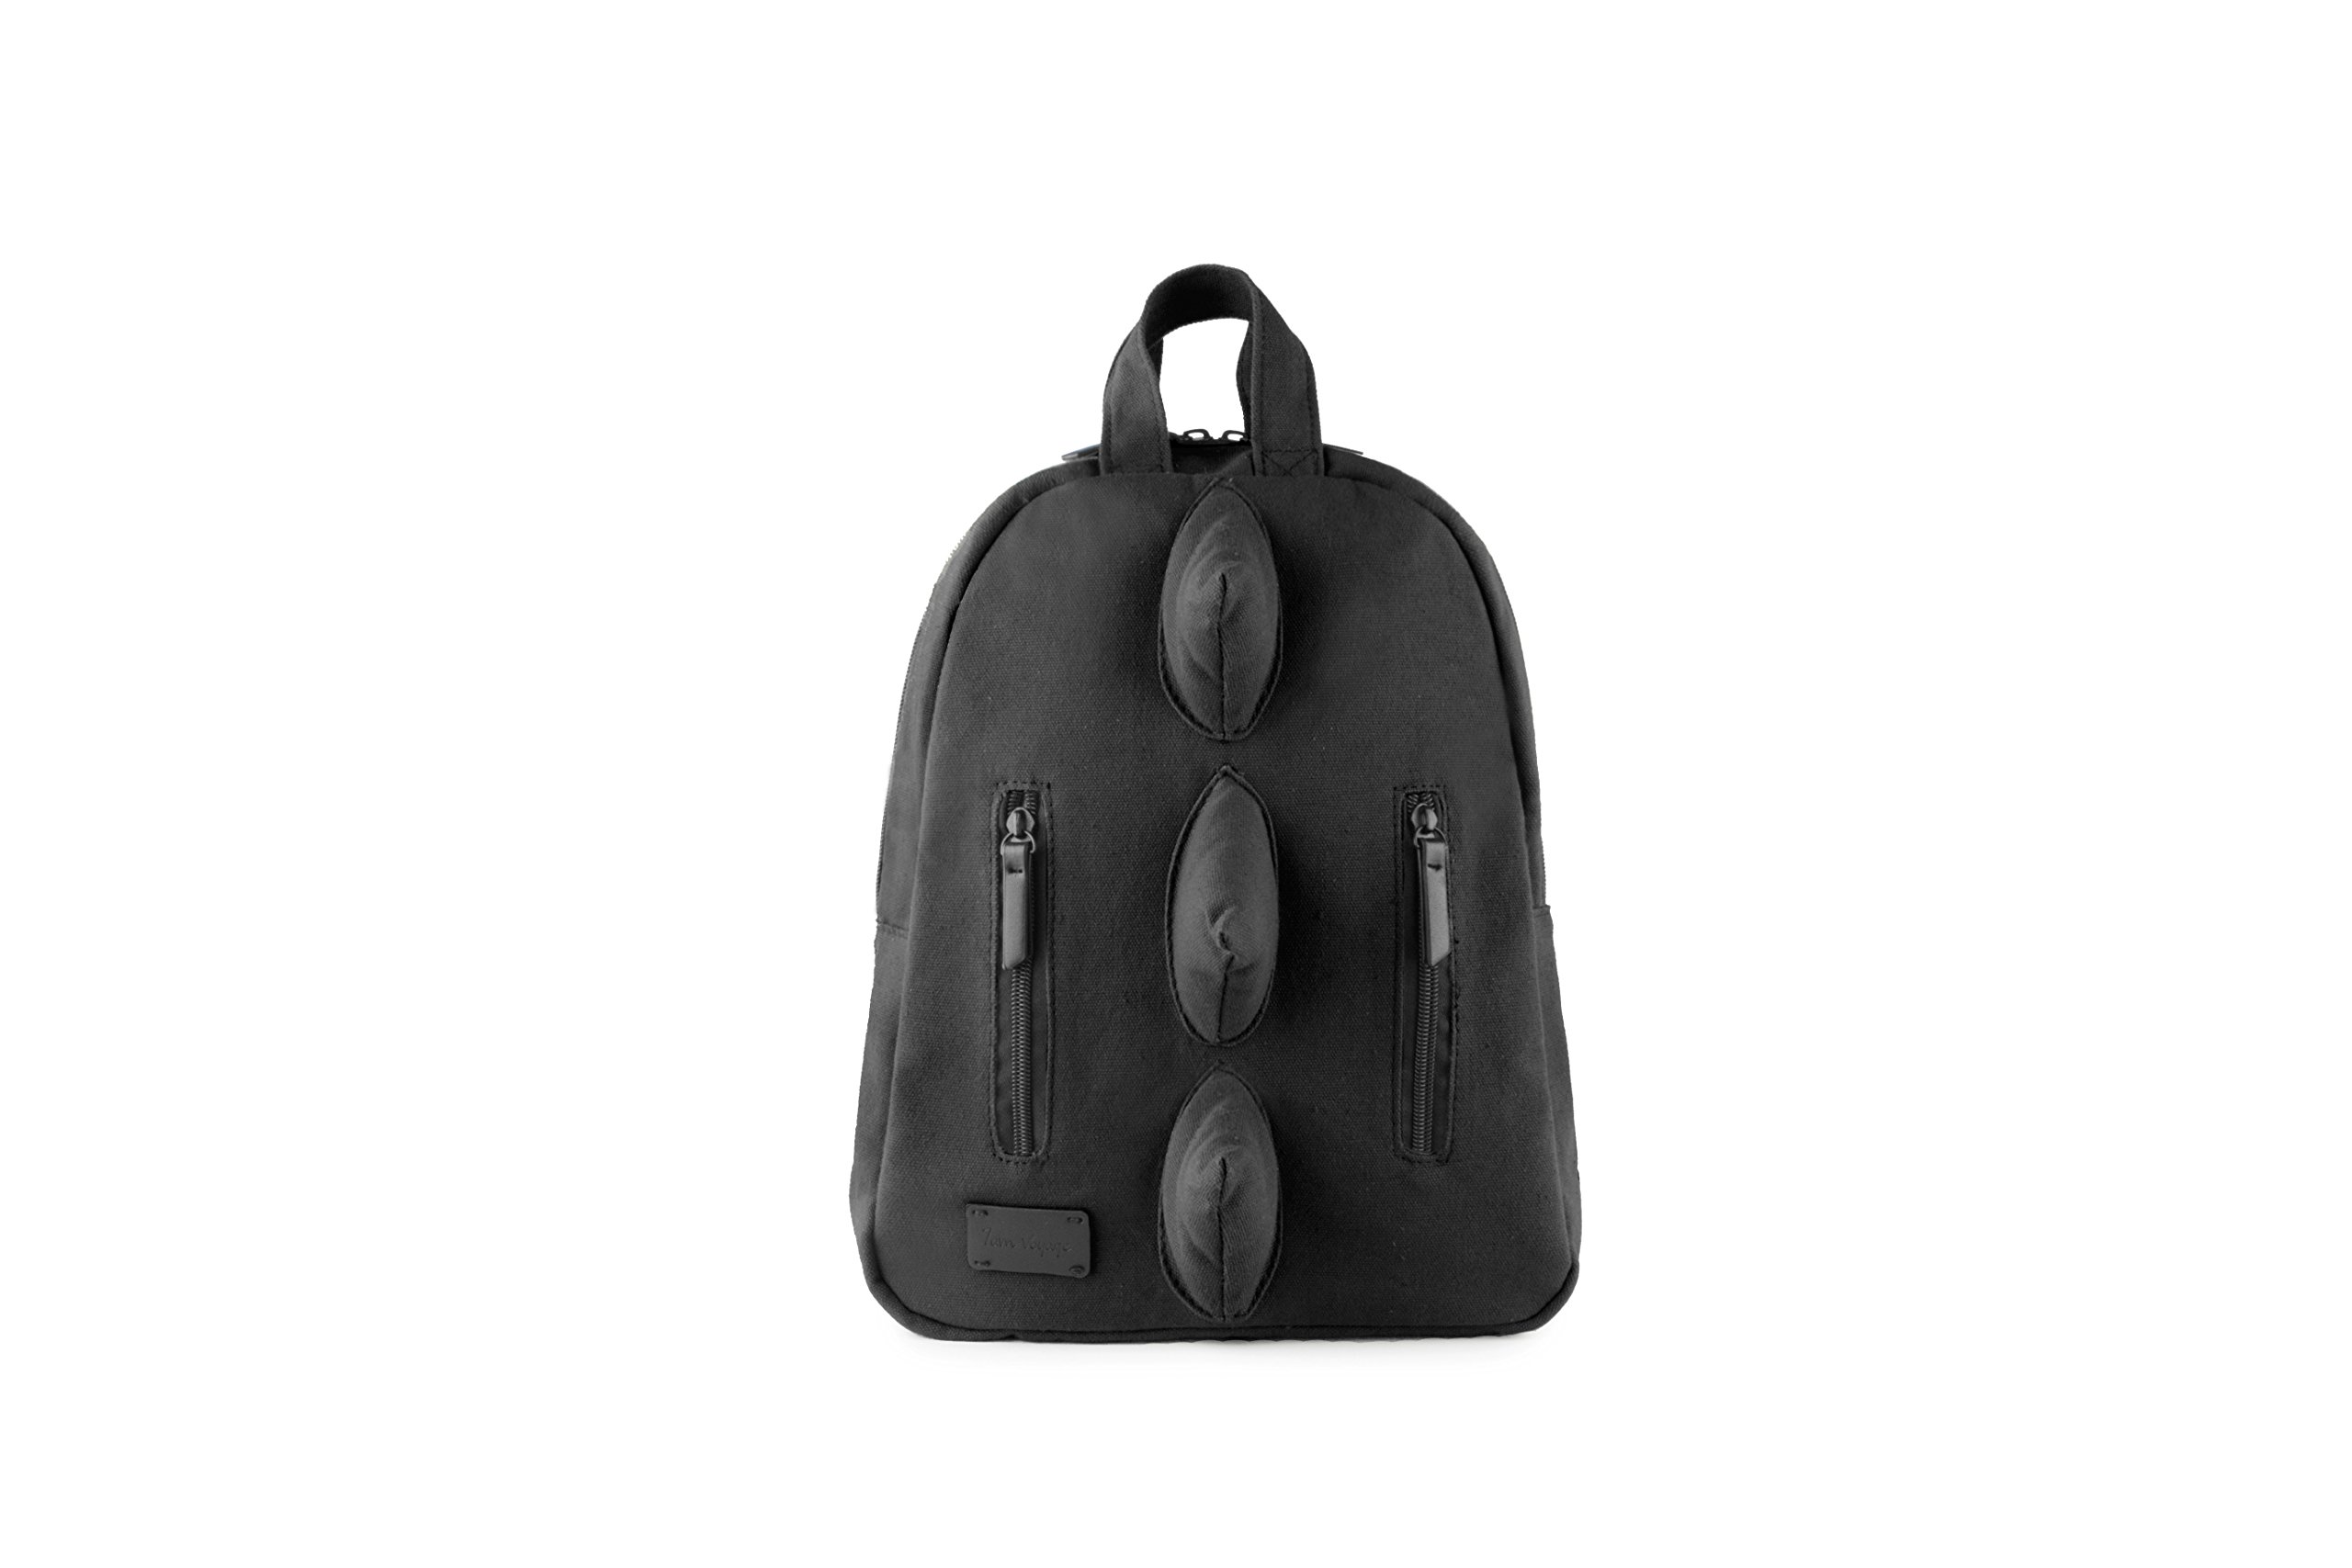 7AM Voyage Mini Dino Cotton Backpack, Unisex Toddlers, Kids and Teens School Backpack, Machine Washable and Durable (Black)